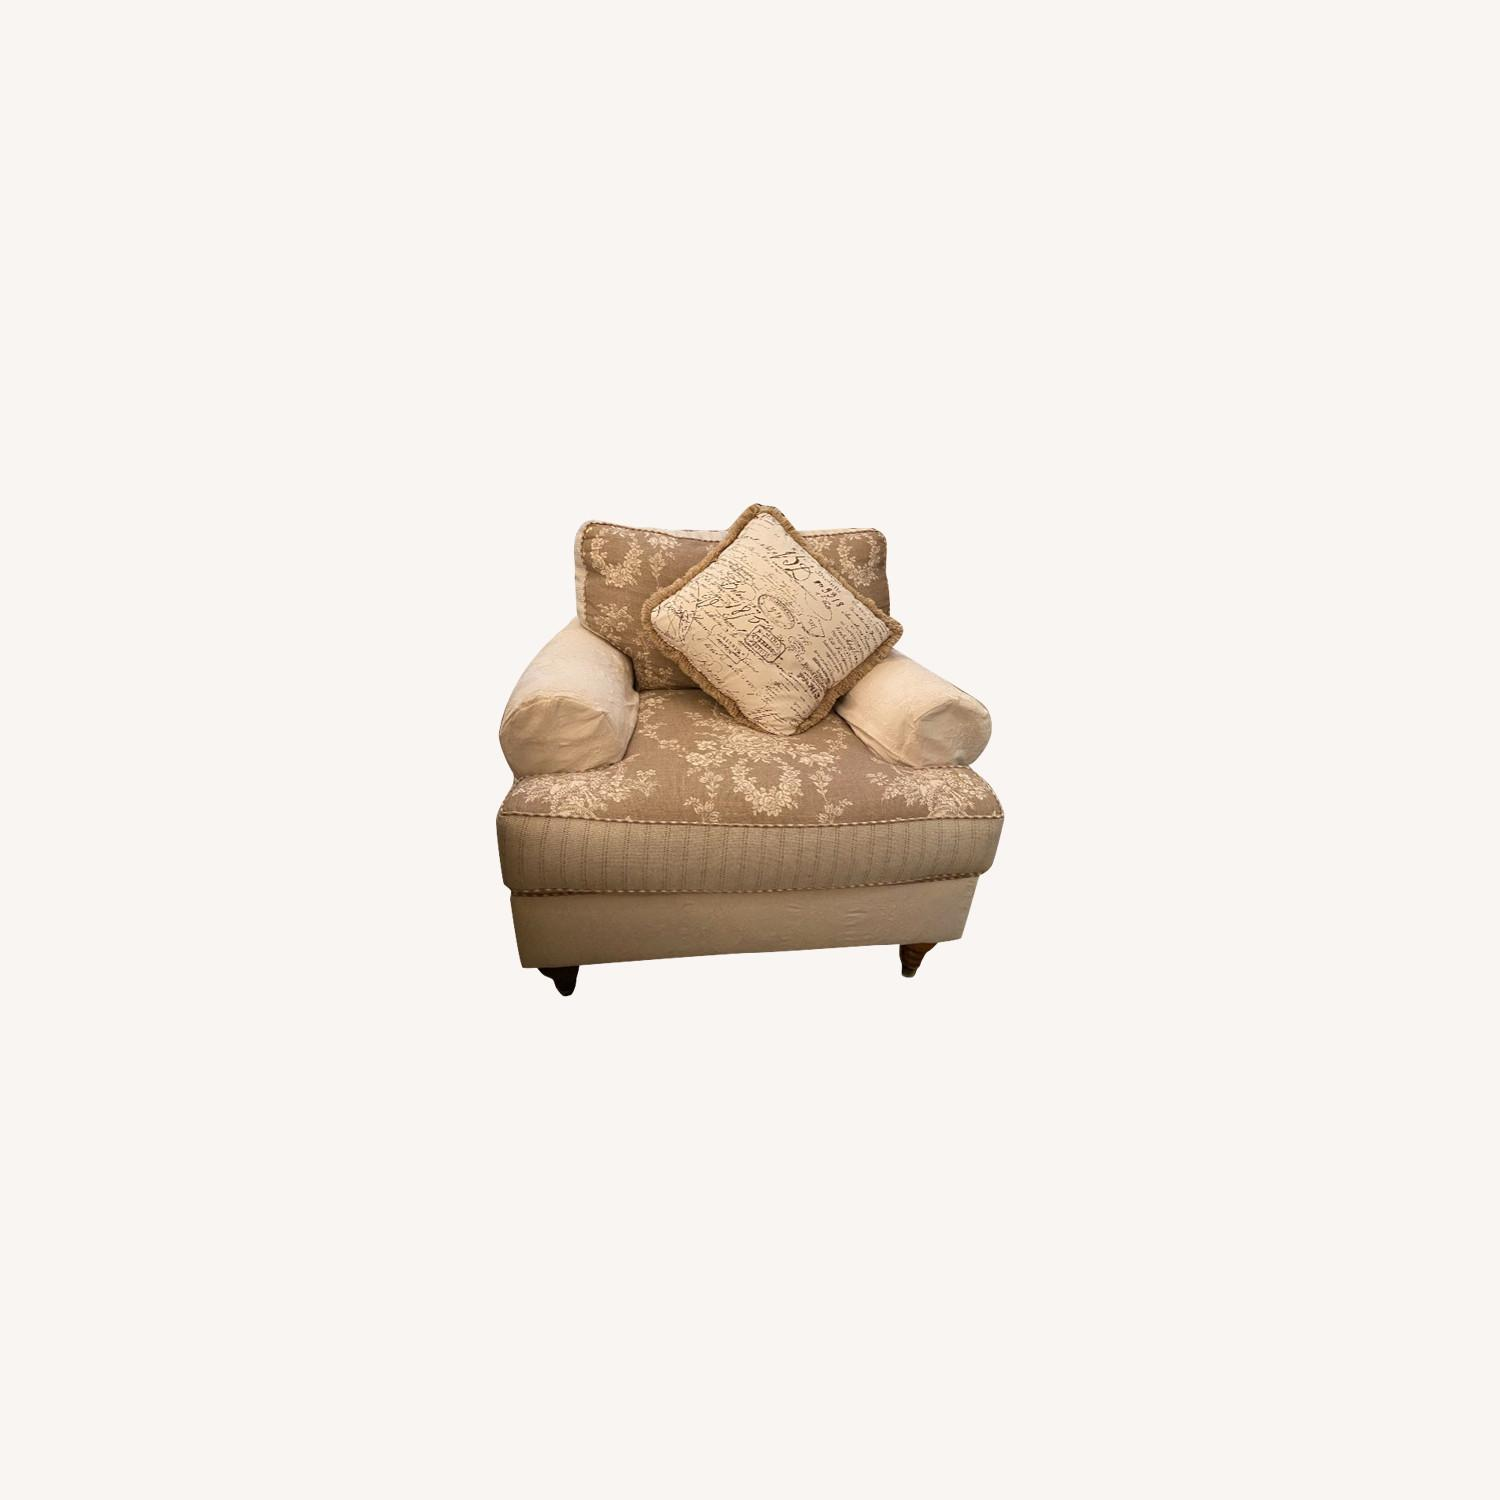 Kindel Furniture Accent Chair - image-0